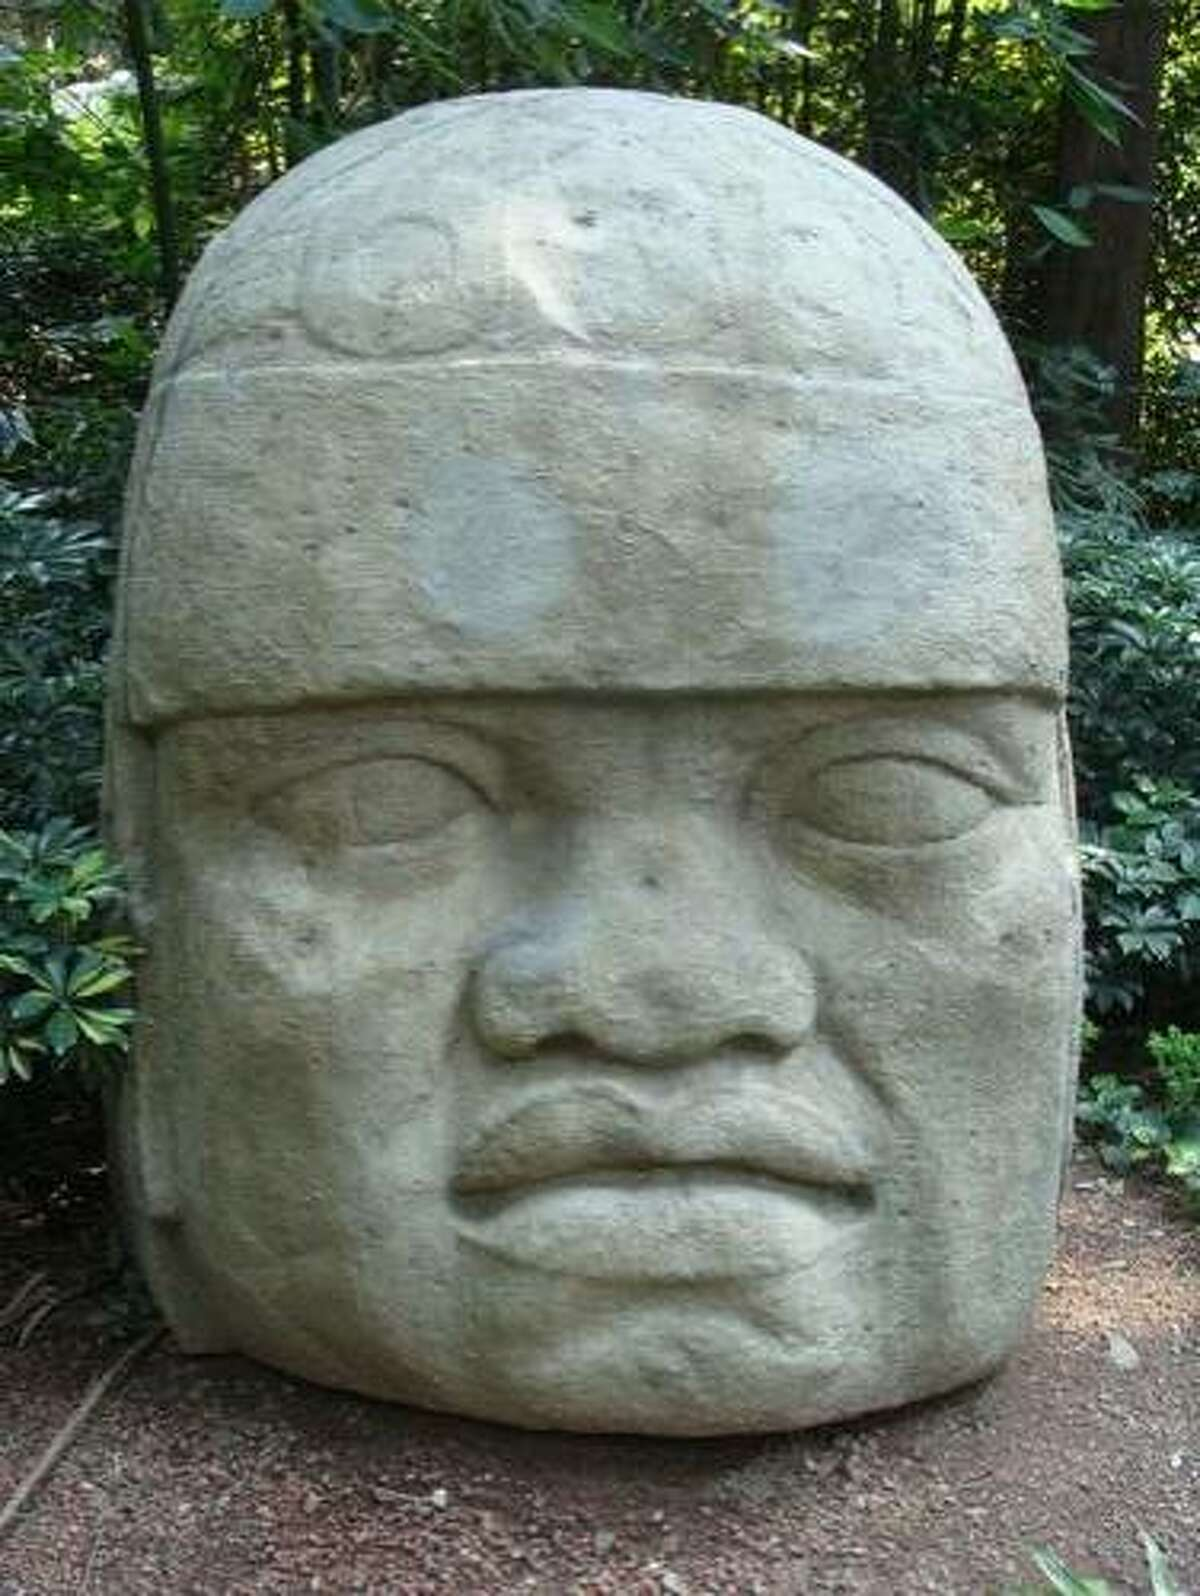 The Olmecs were the first to leave signs of their culture for succeeding civilizations to contemplate, but the colossal stone heads, each carved from basalt rock weighing as much as 30 tons procured from hundreds of miles away, raise more questions than they answer.